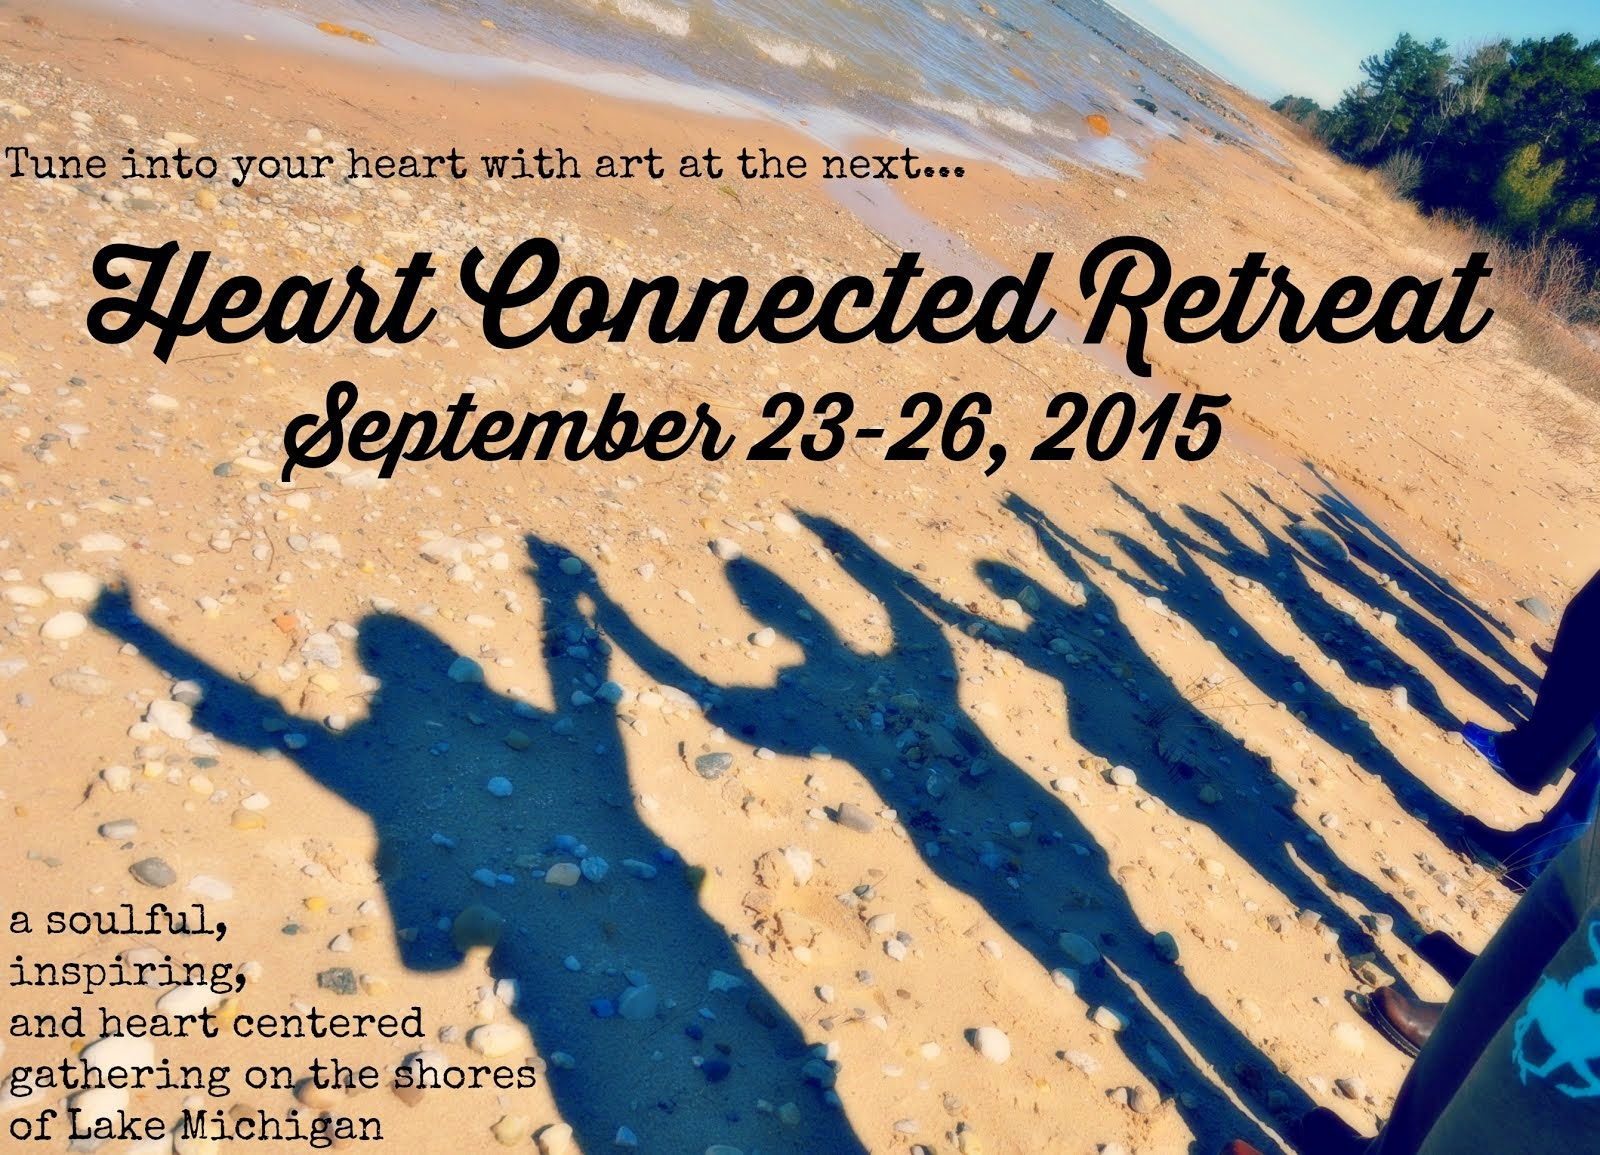 Heart Connected RETREAT 2015